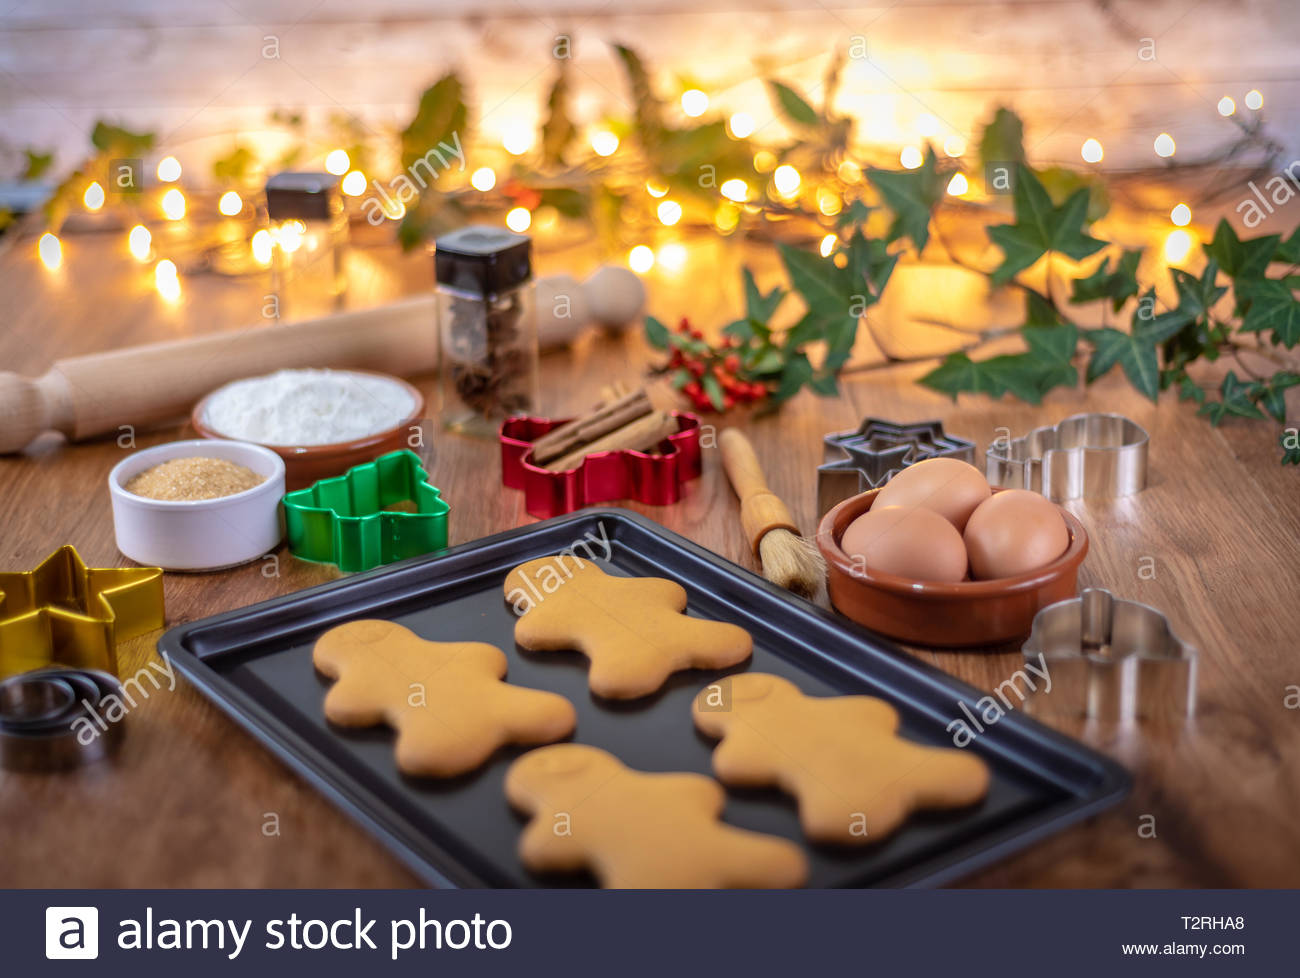 Cooking Gingerbread men at Christmas Stock Photo